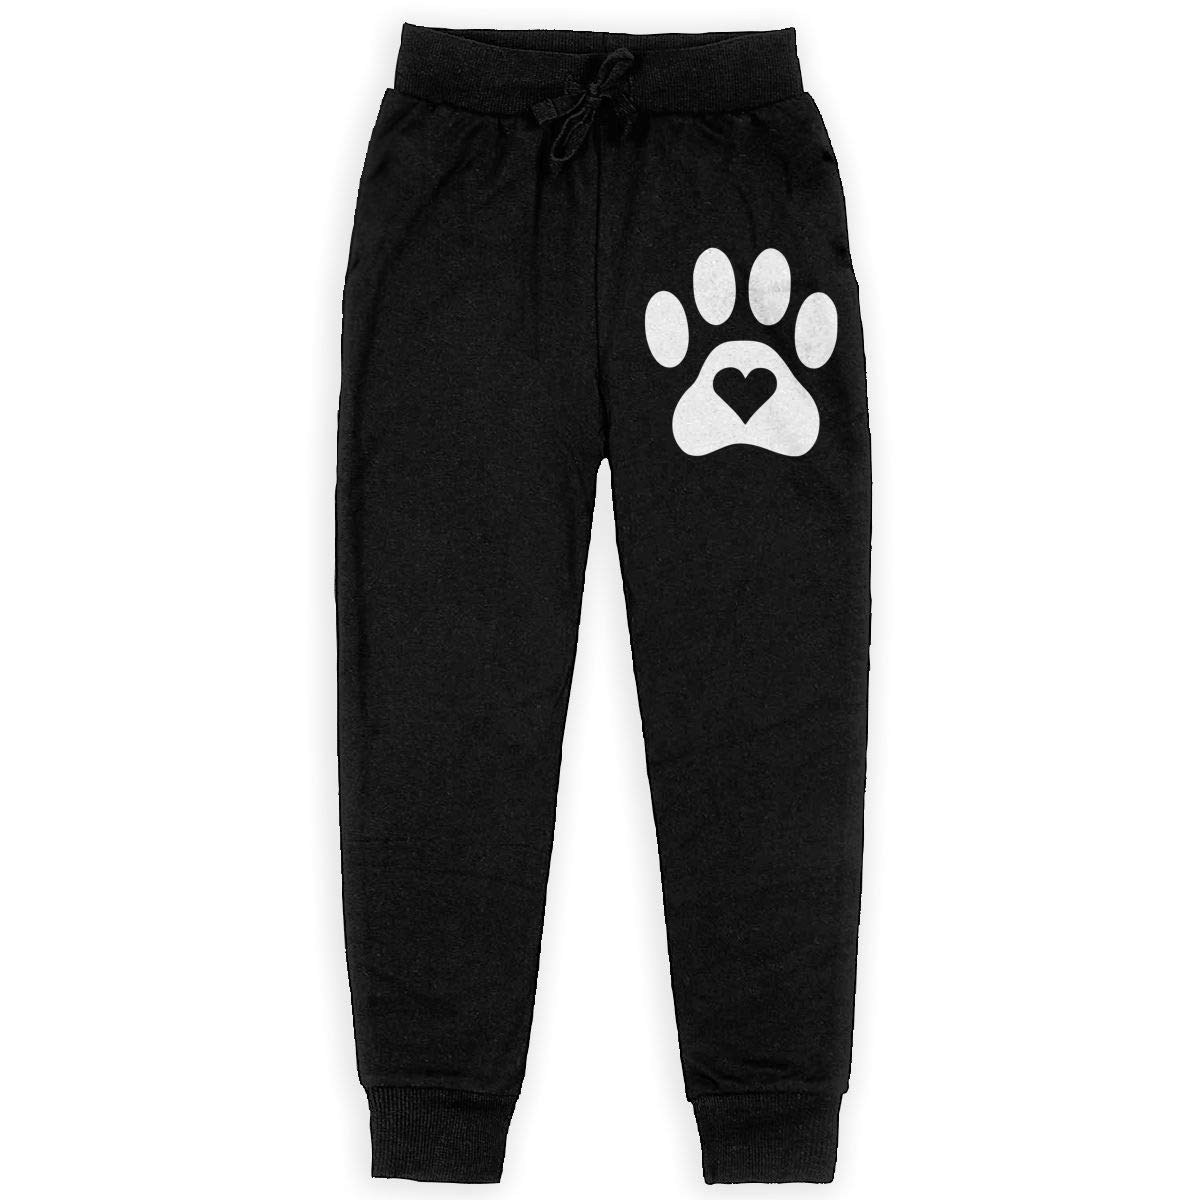 Youth Warm Fleece Active Pants for Teen Girls Dog Paw Heart-1 Soft//Cozy Sweatpants